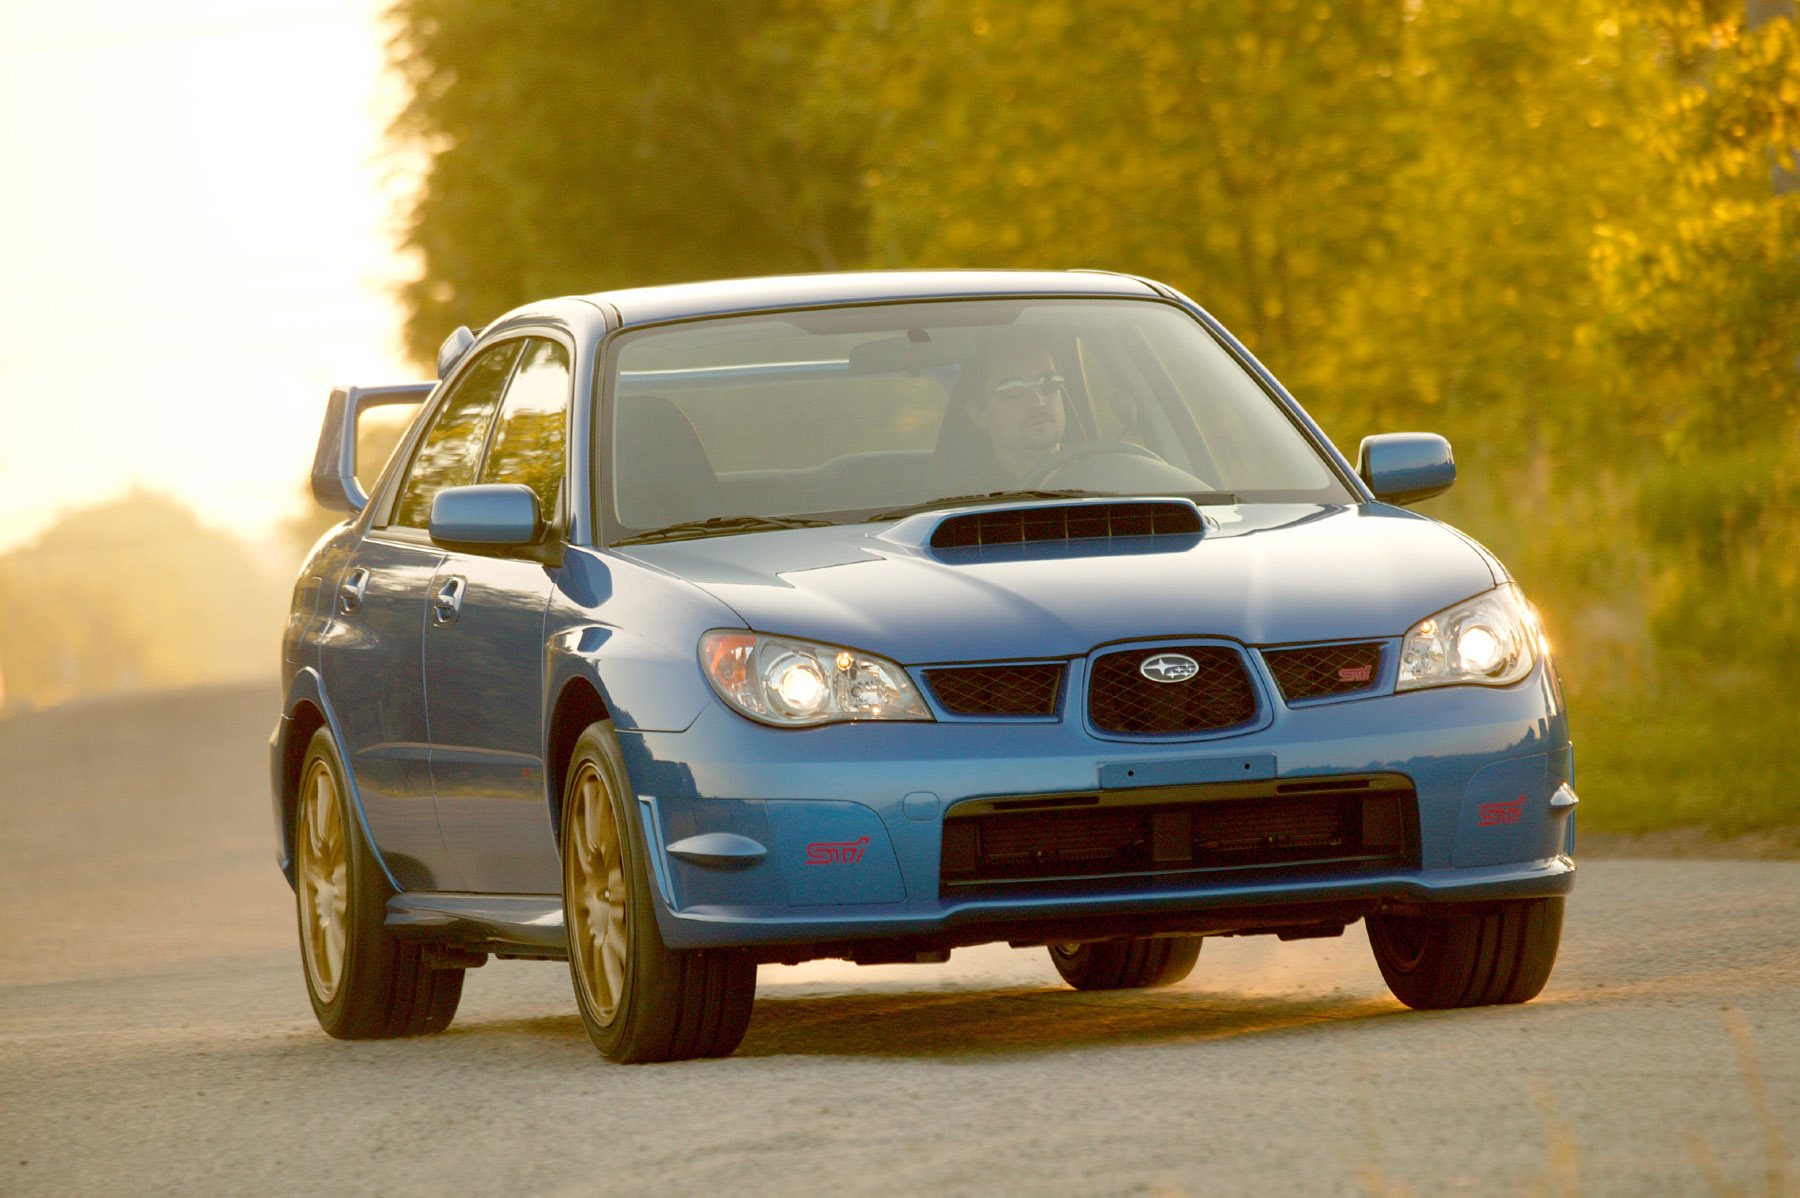 2006 subaru impreza wrx sti pictures photos wallpapers top speed. Black Bedroom Furniture Sets. Home Design Ideas